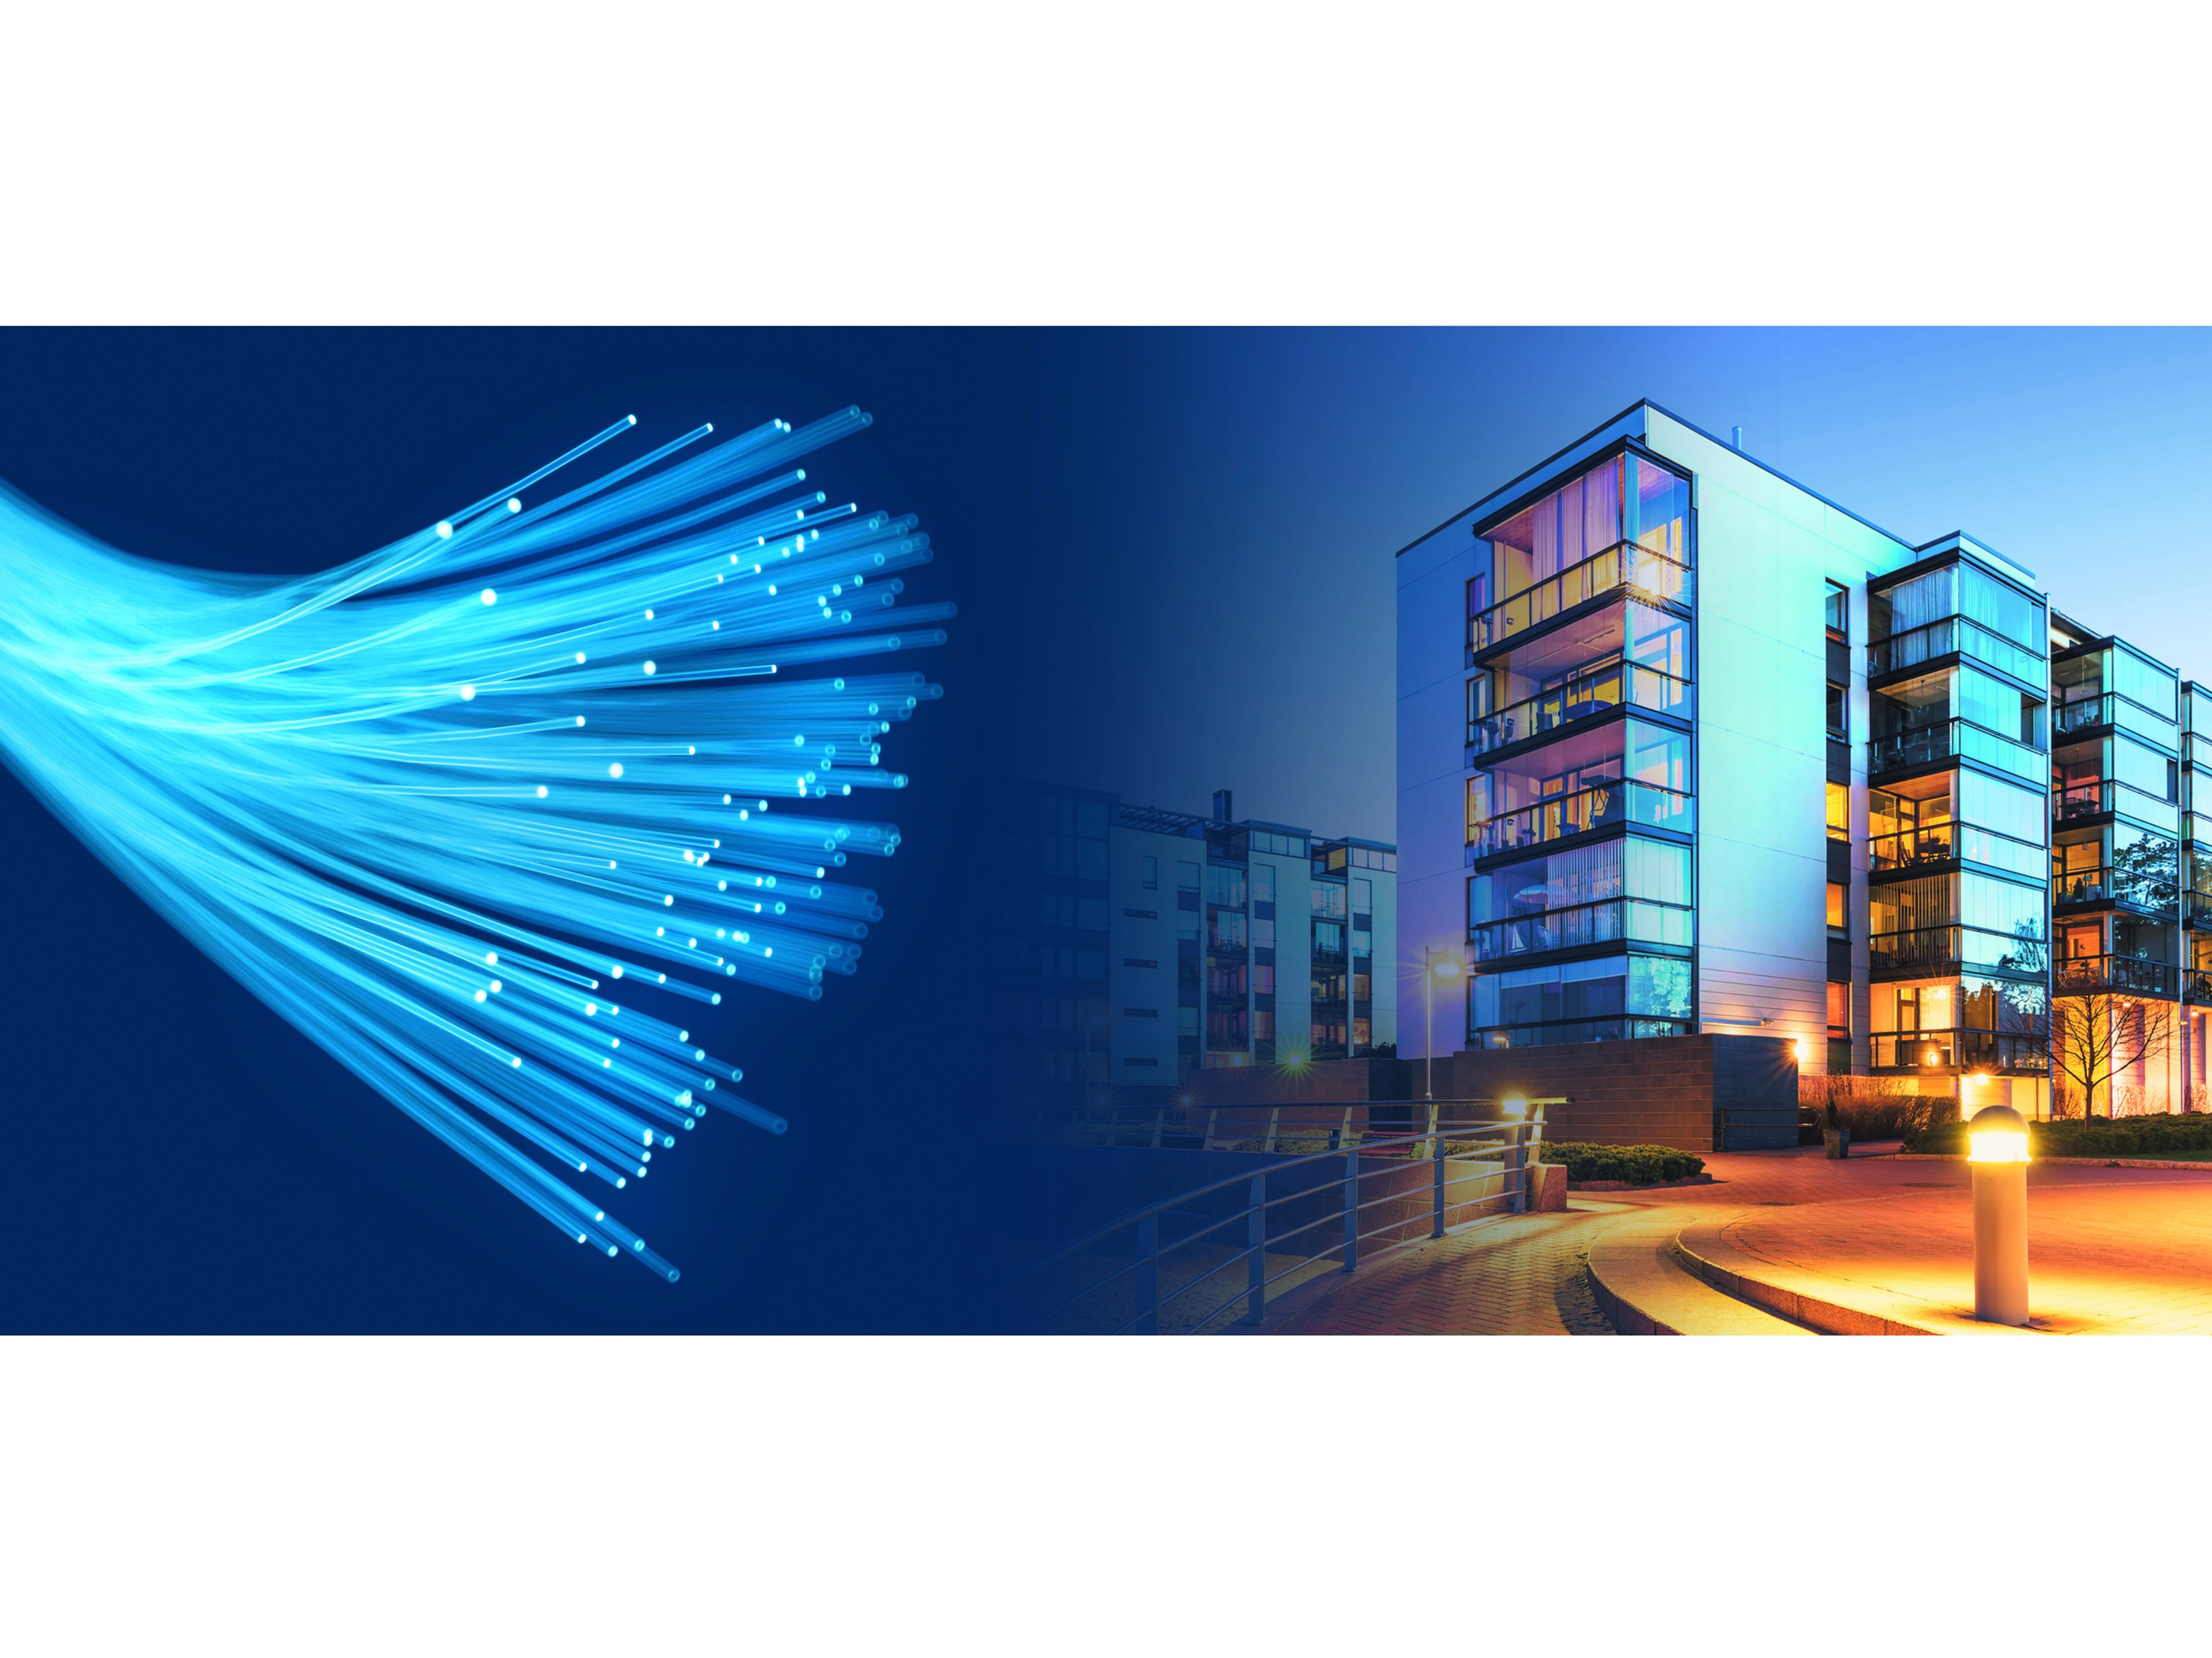 Fibre optic in the residential buildings ftth fiber to the for Architecture ftth